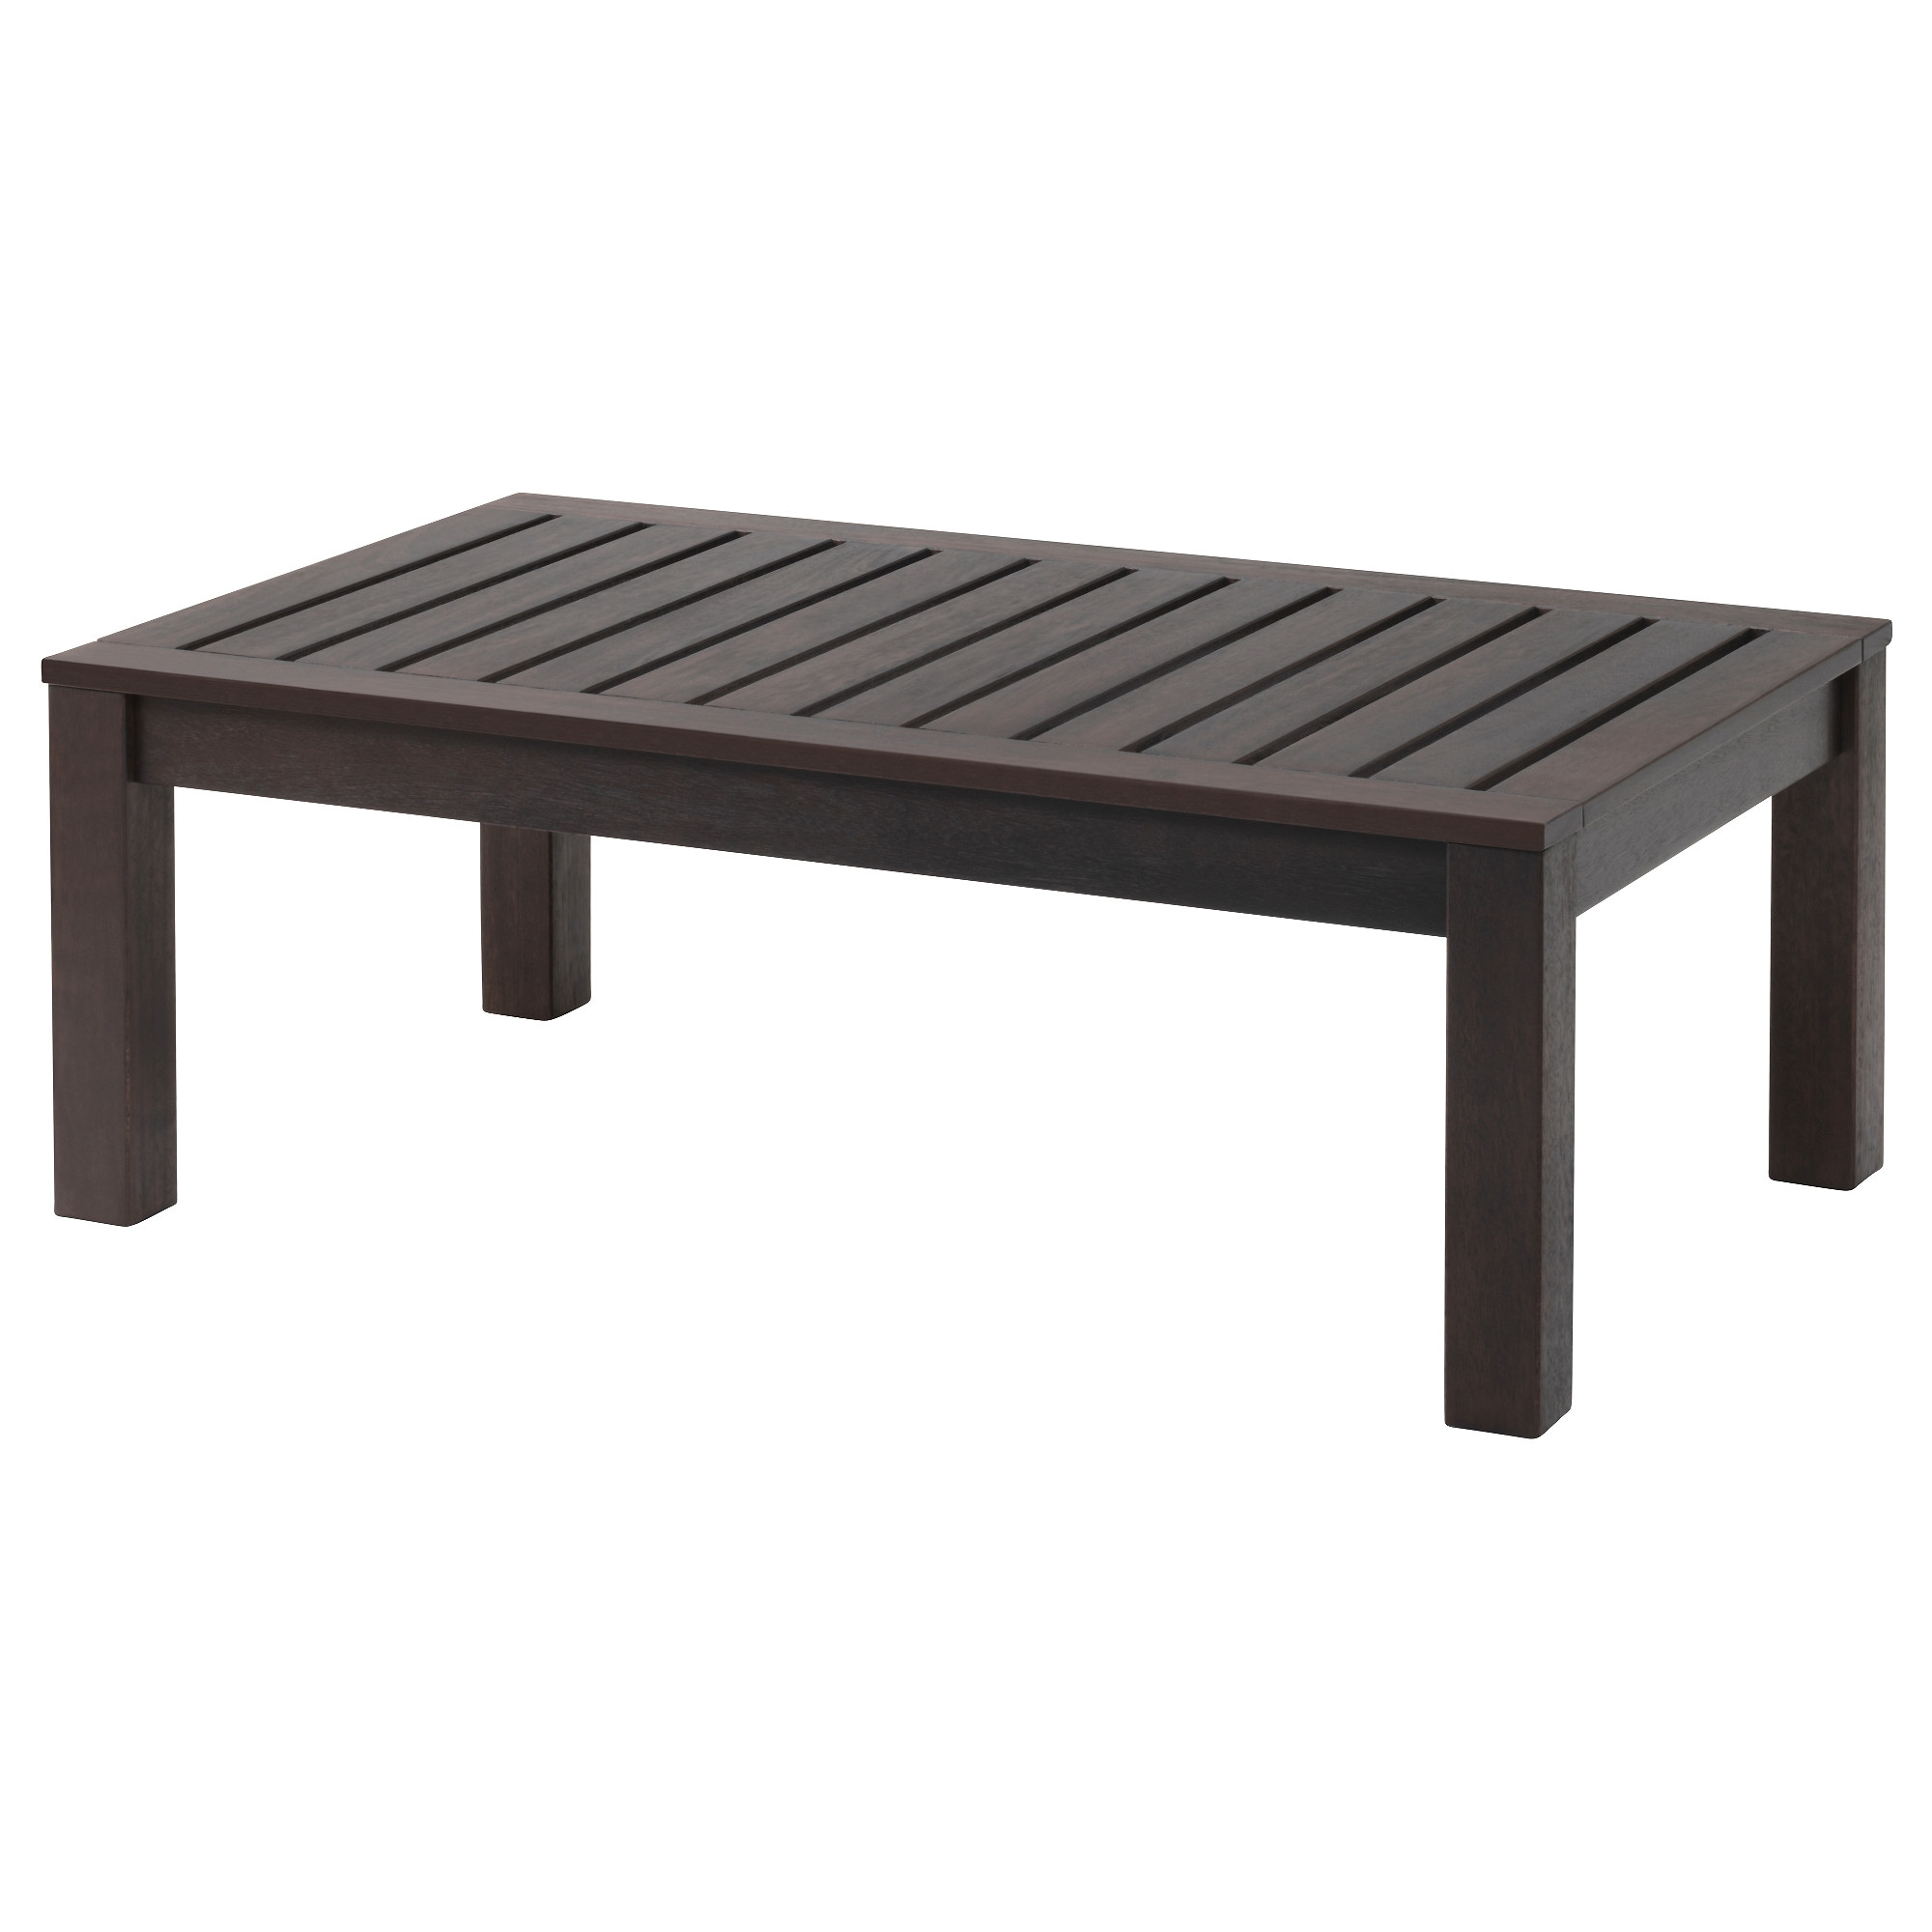 Outdoor Coffee Tables & Lounge Chairs IKEA